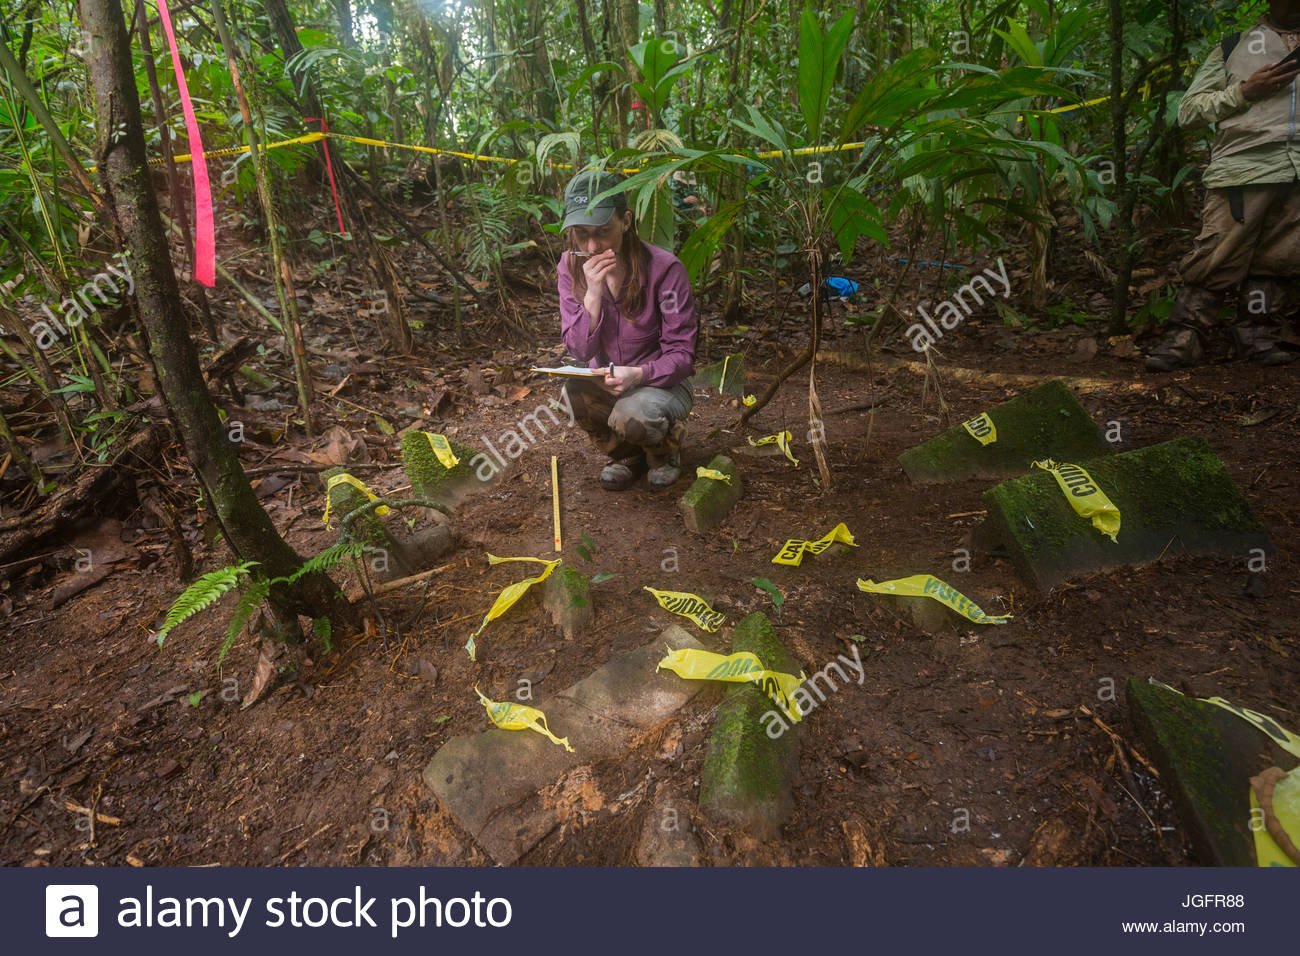 An anthropology grad student documents a cache of more than 50 artifacts discovered in the Mosquitia jungle. - Stock Image